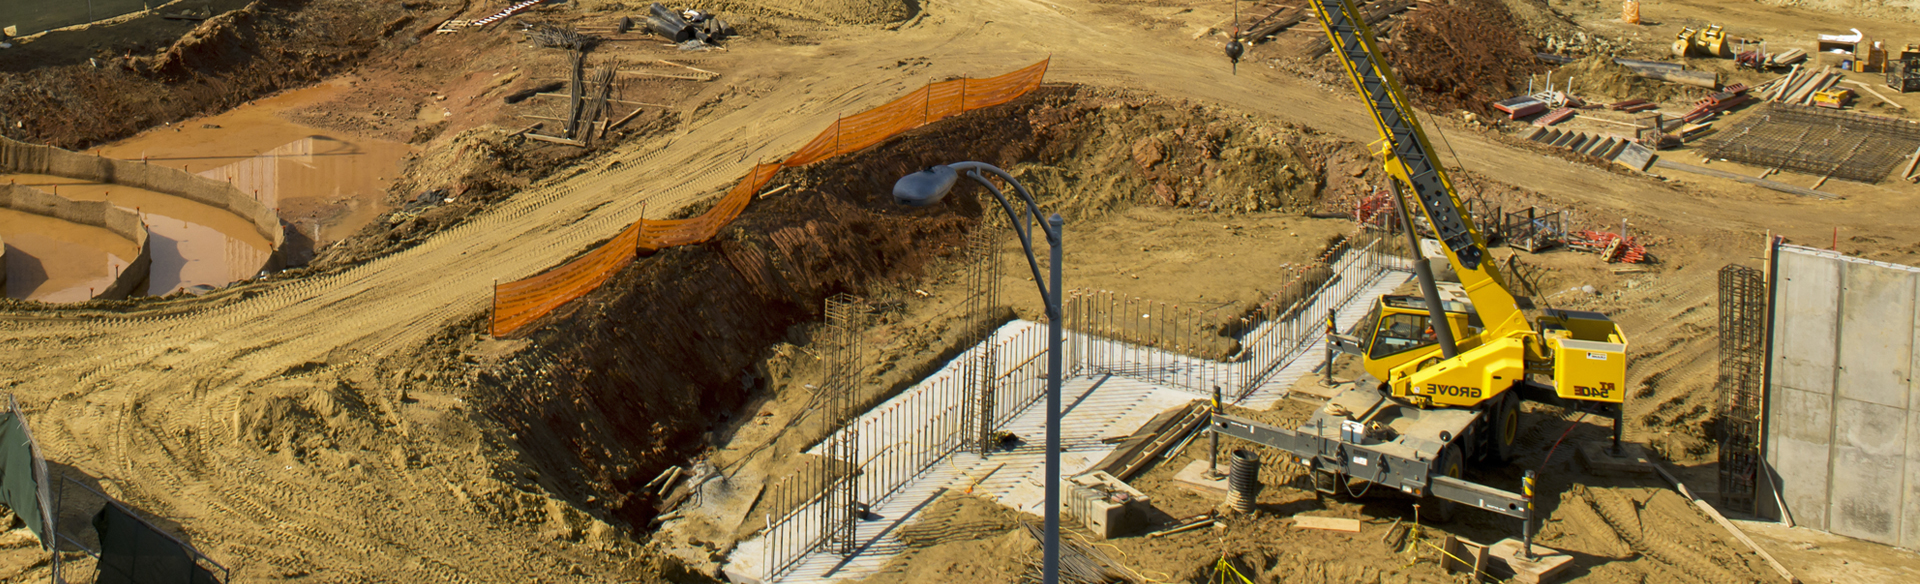 Cotney Construction Law and Cotney Consulting Group Unite as Cotney featured image